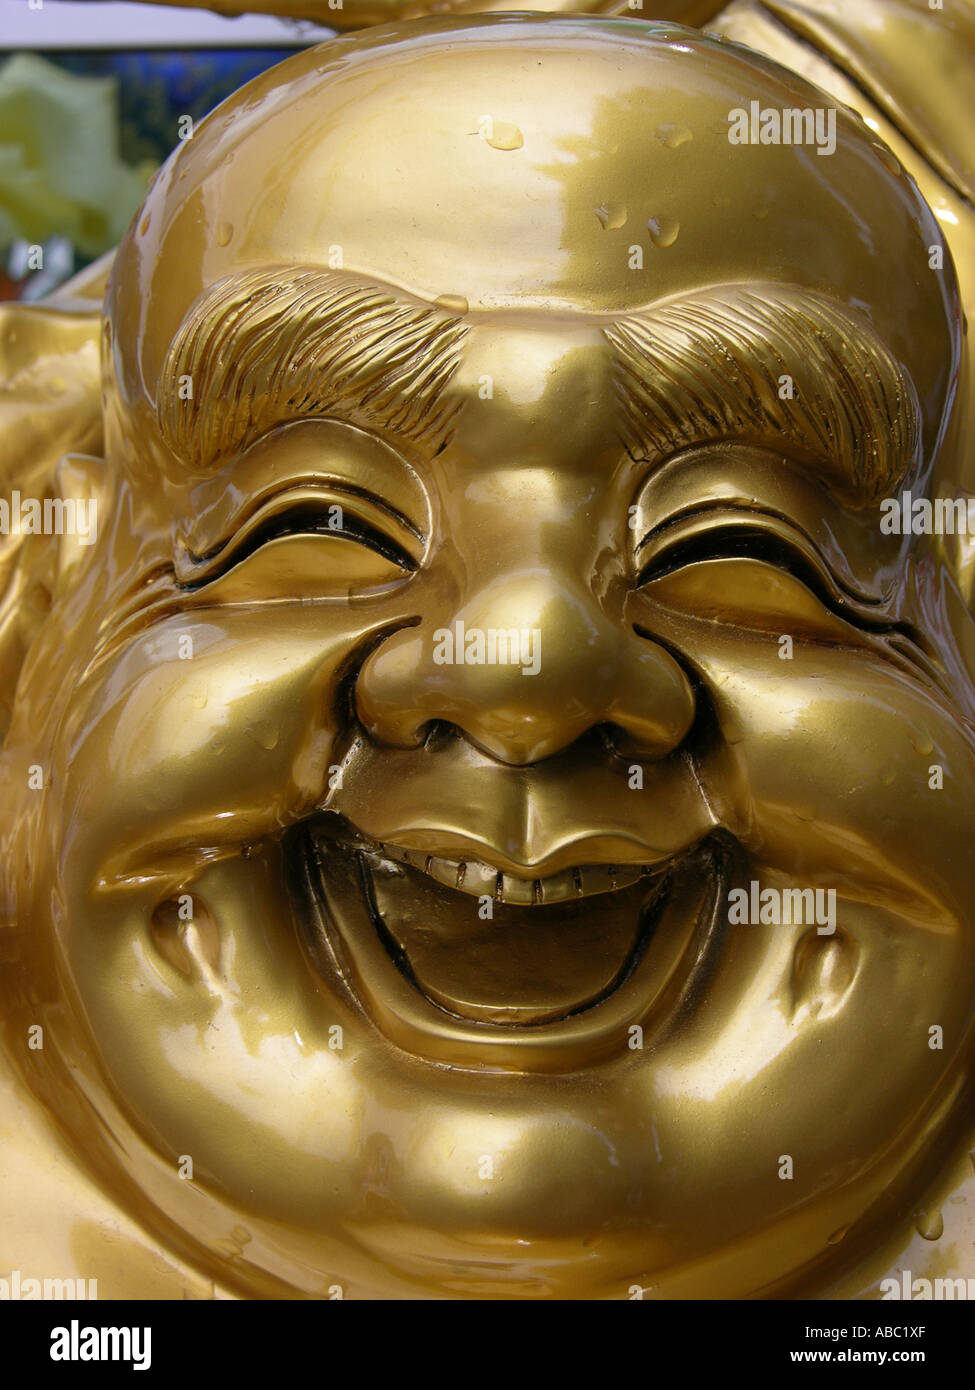 Portrait of a laughing golden Buddah figure - Stock Image